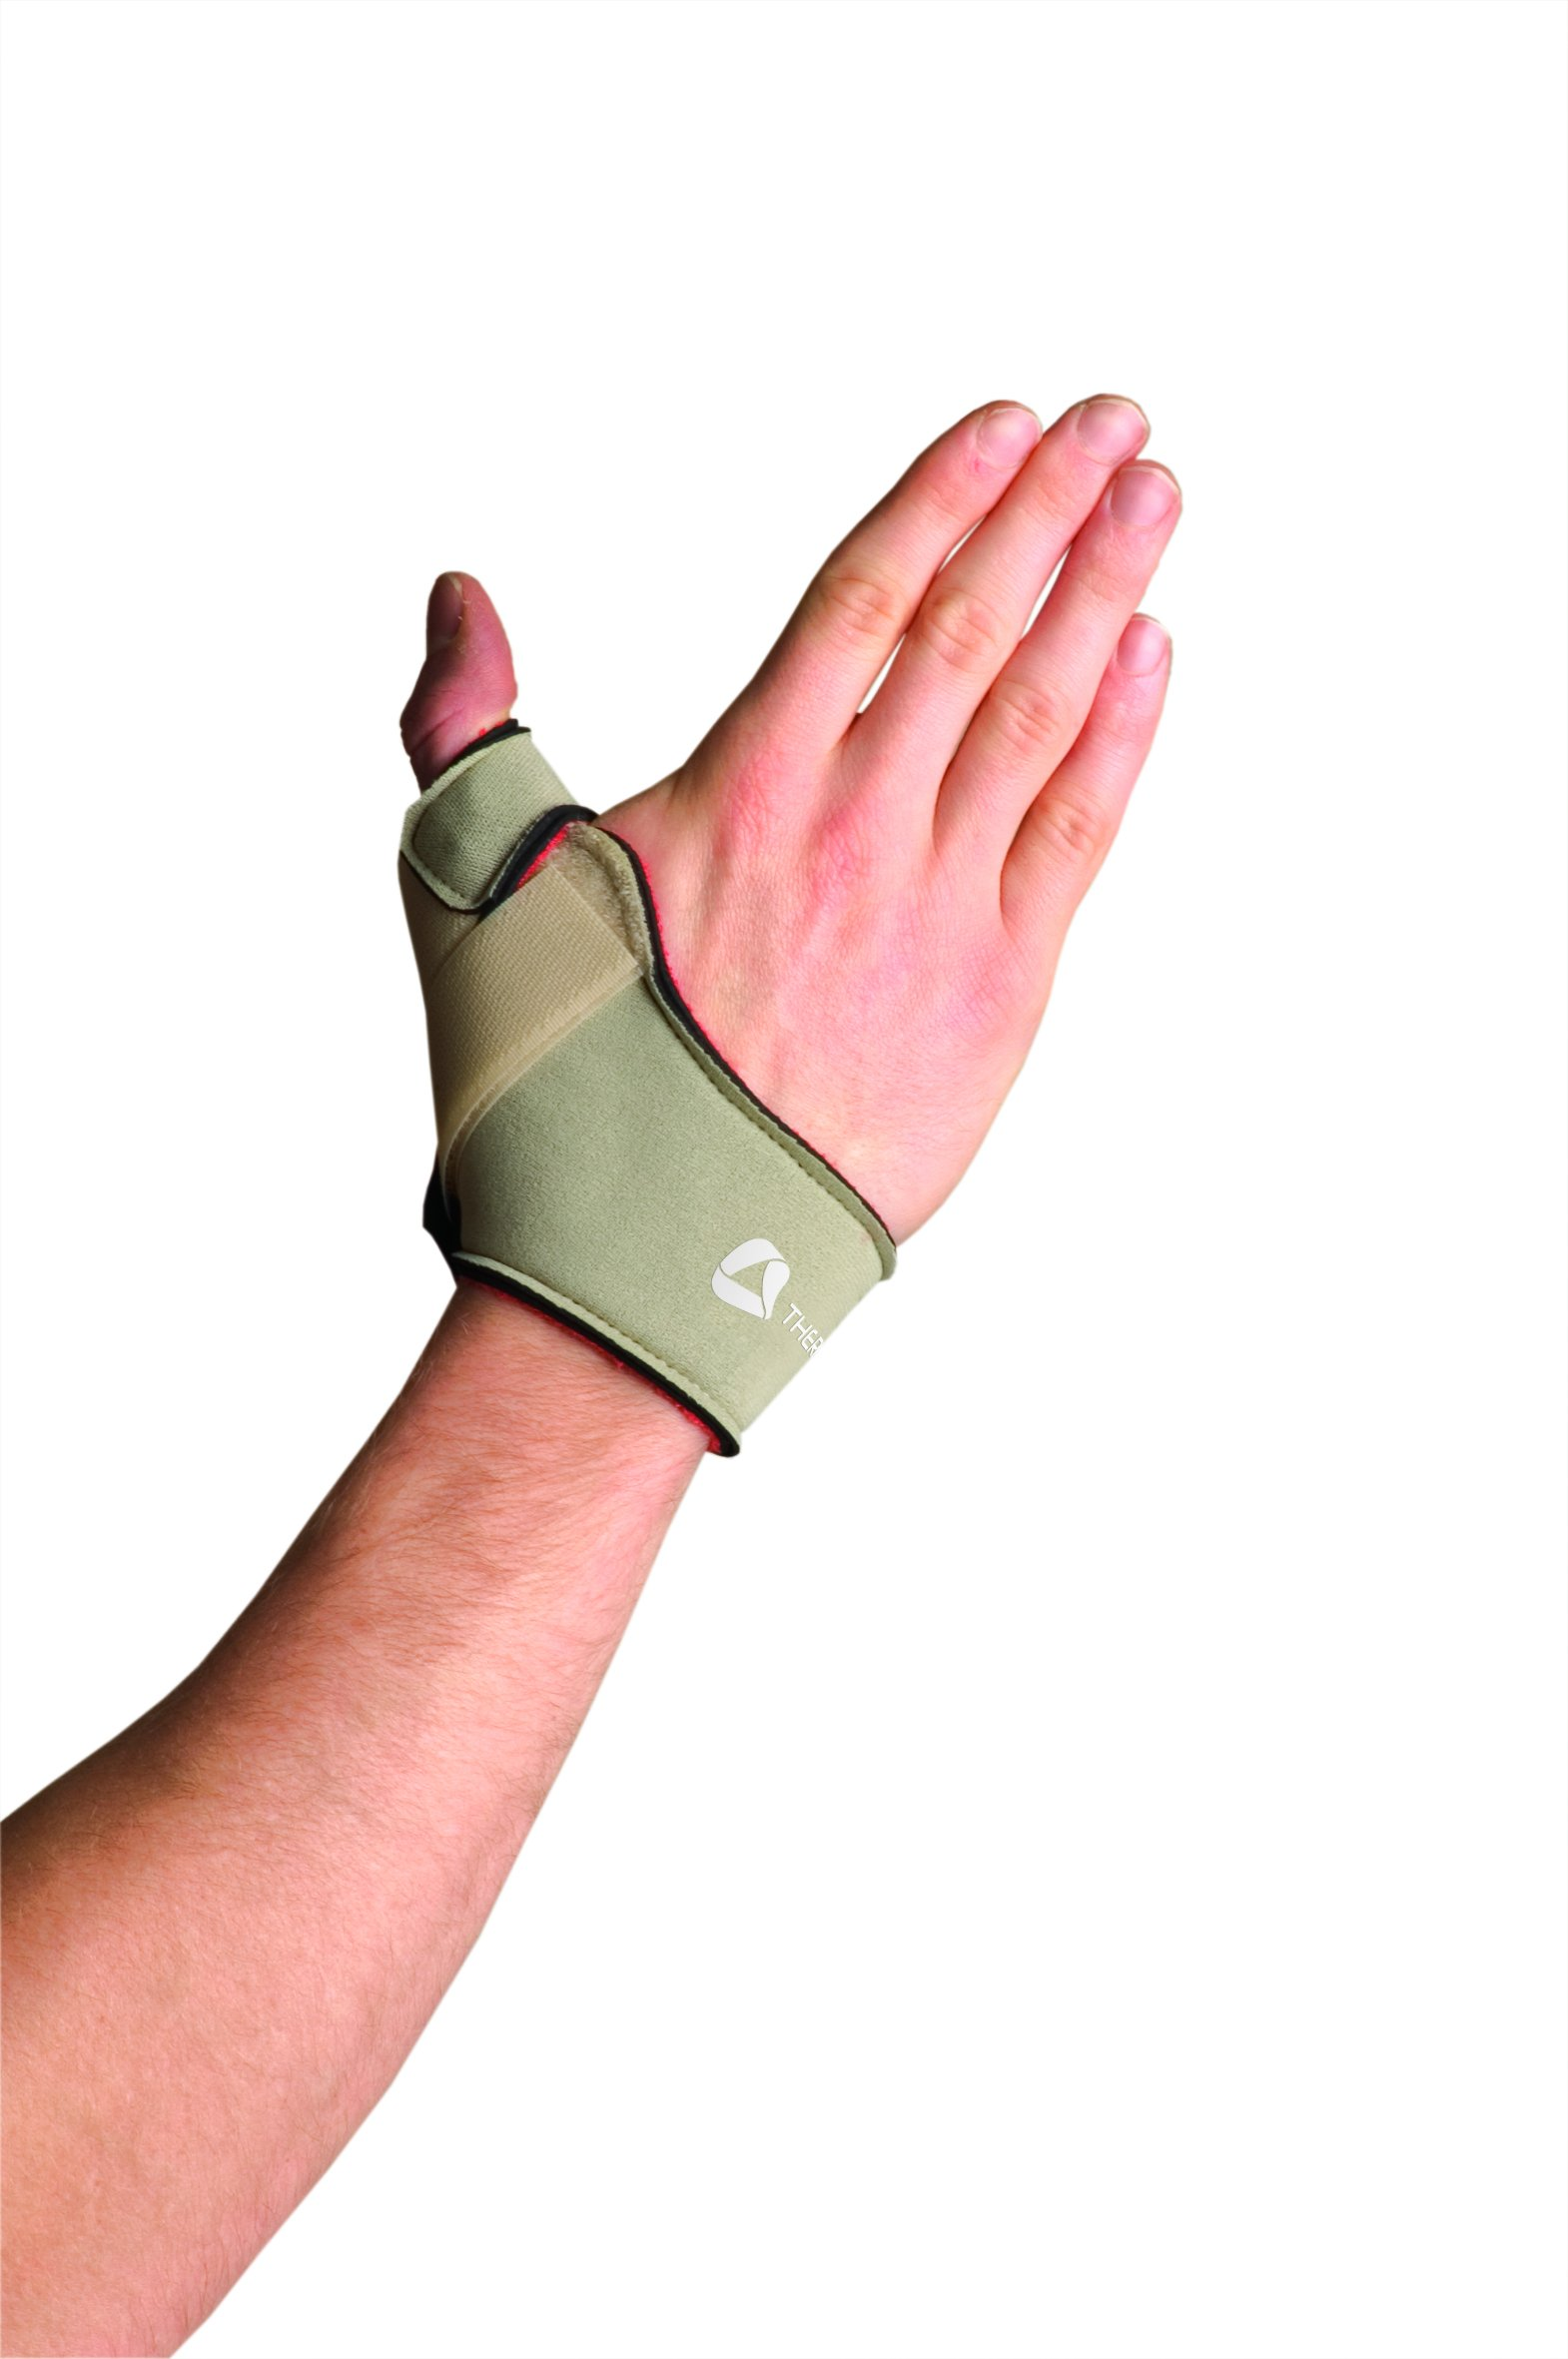 Thermoskin Flexible Thumb Right Splint, Beige, Medium